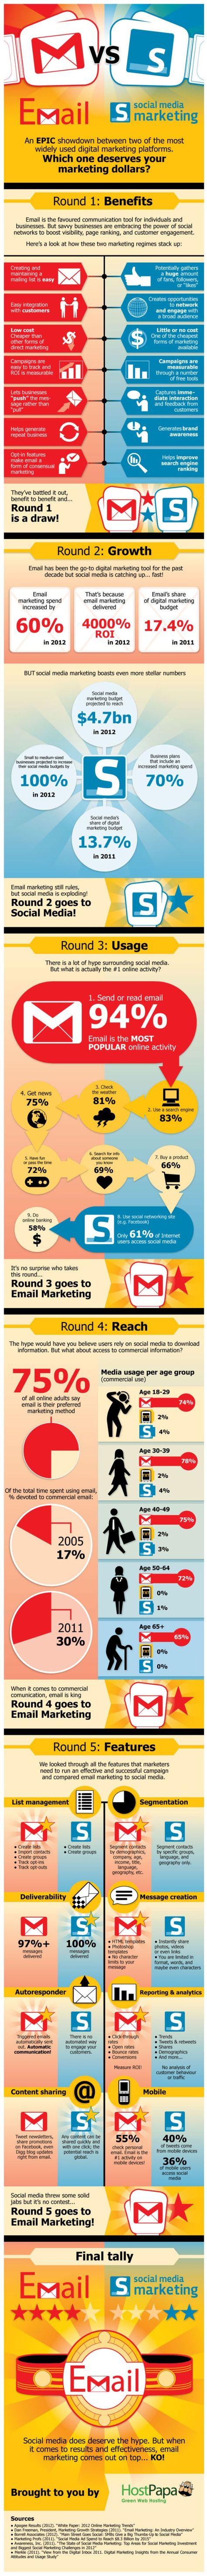 Who wins the marketing war between email versus social media? [INFOGRAPHIC] | PhocusWire